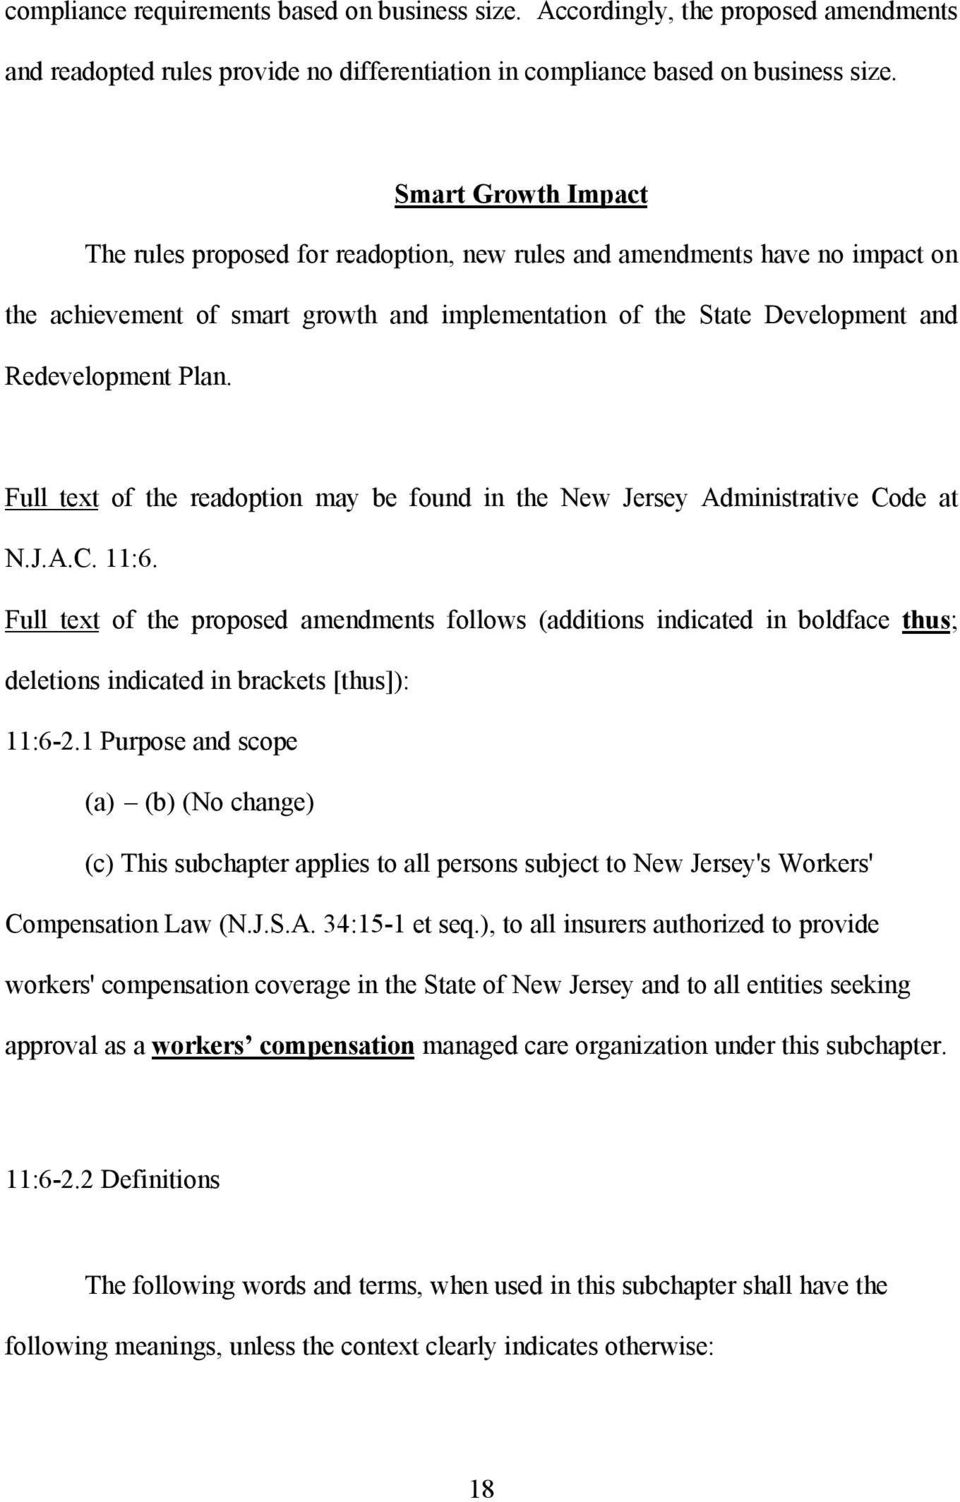 Full text of the readoption may be found in the New Jersey Administrative Code at N.J.A.C. 11:6.